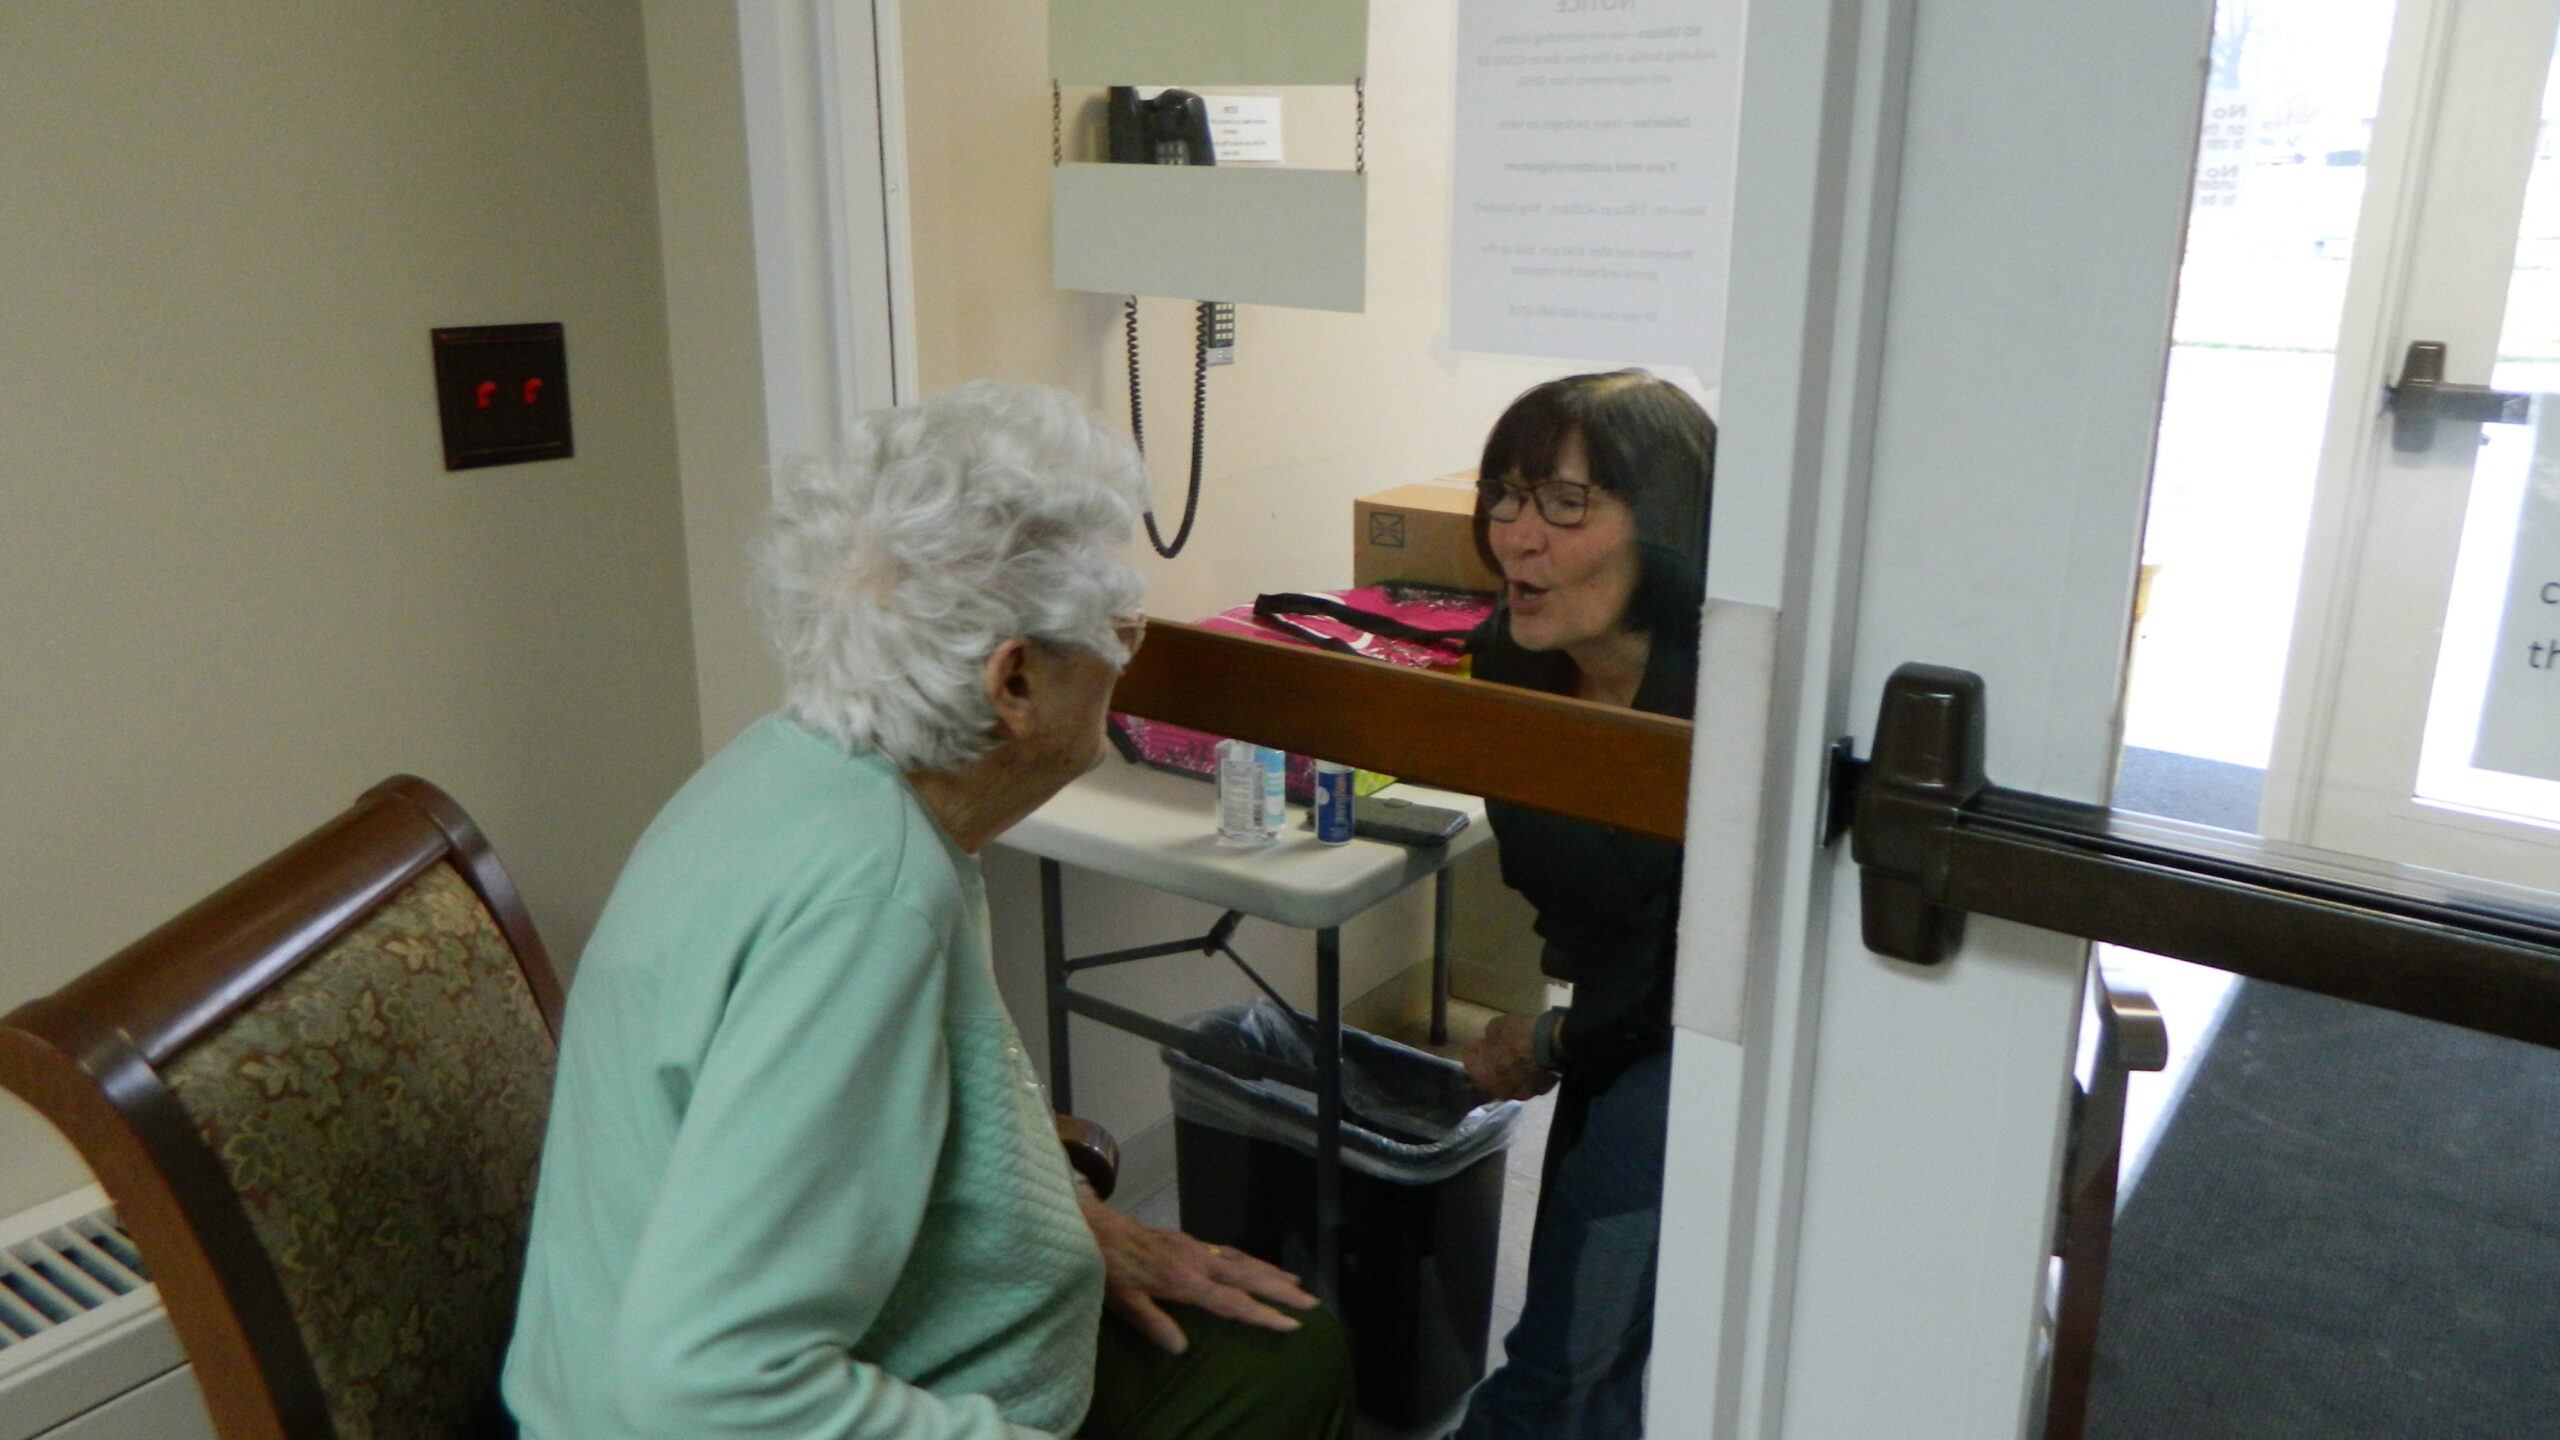 Elderly woman visits with woman through glass door